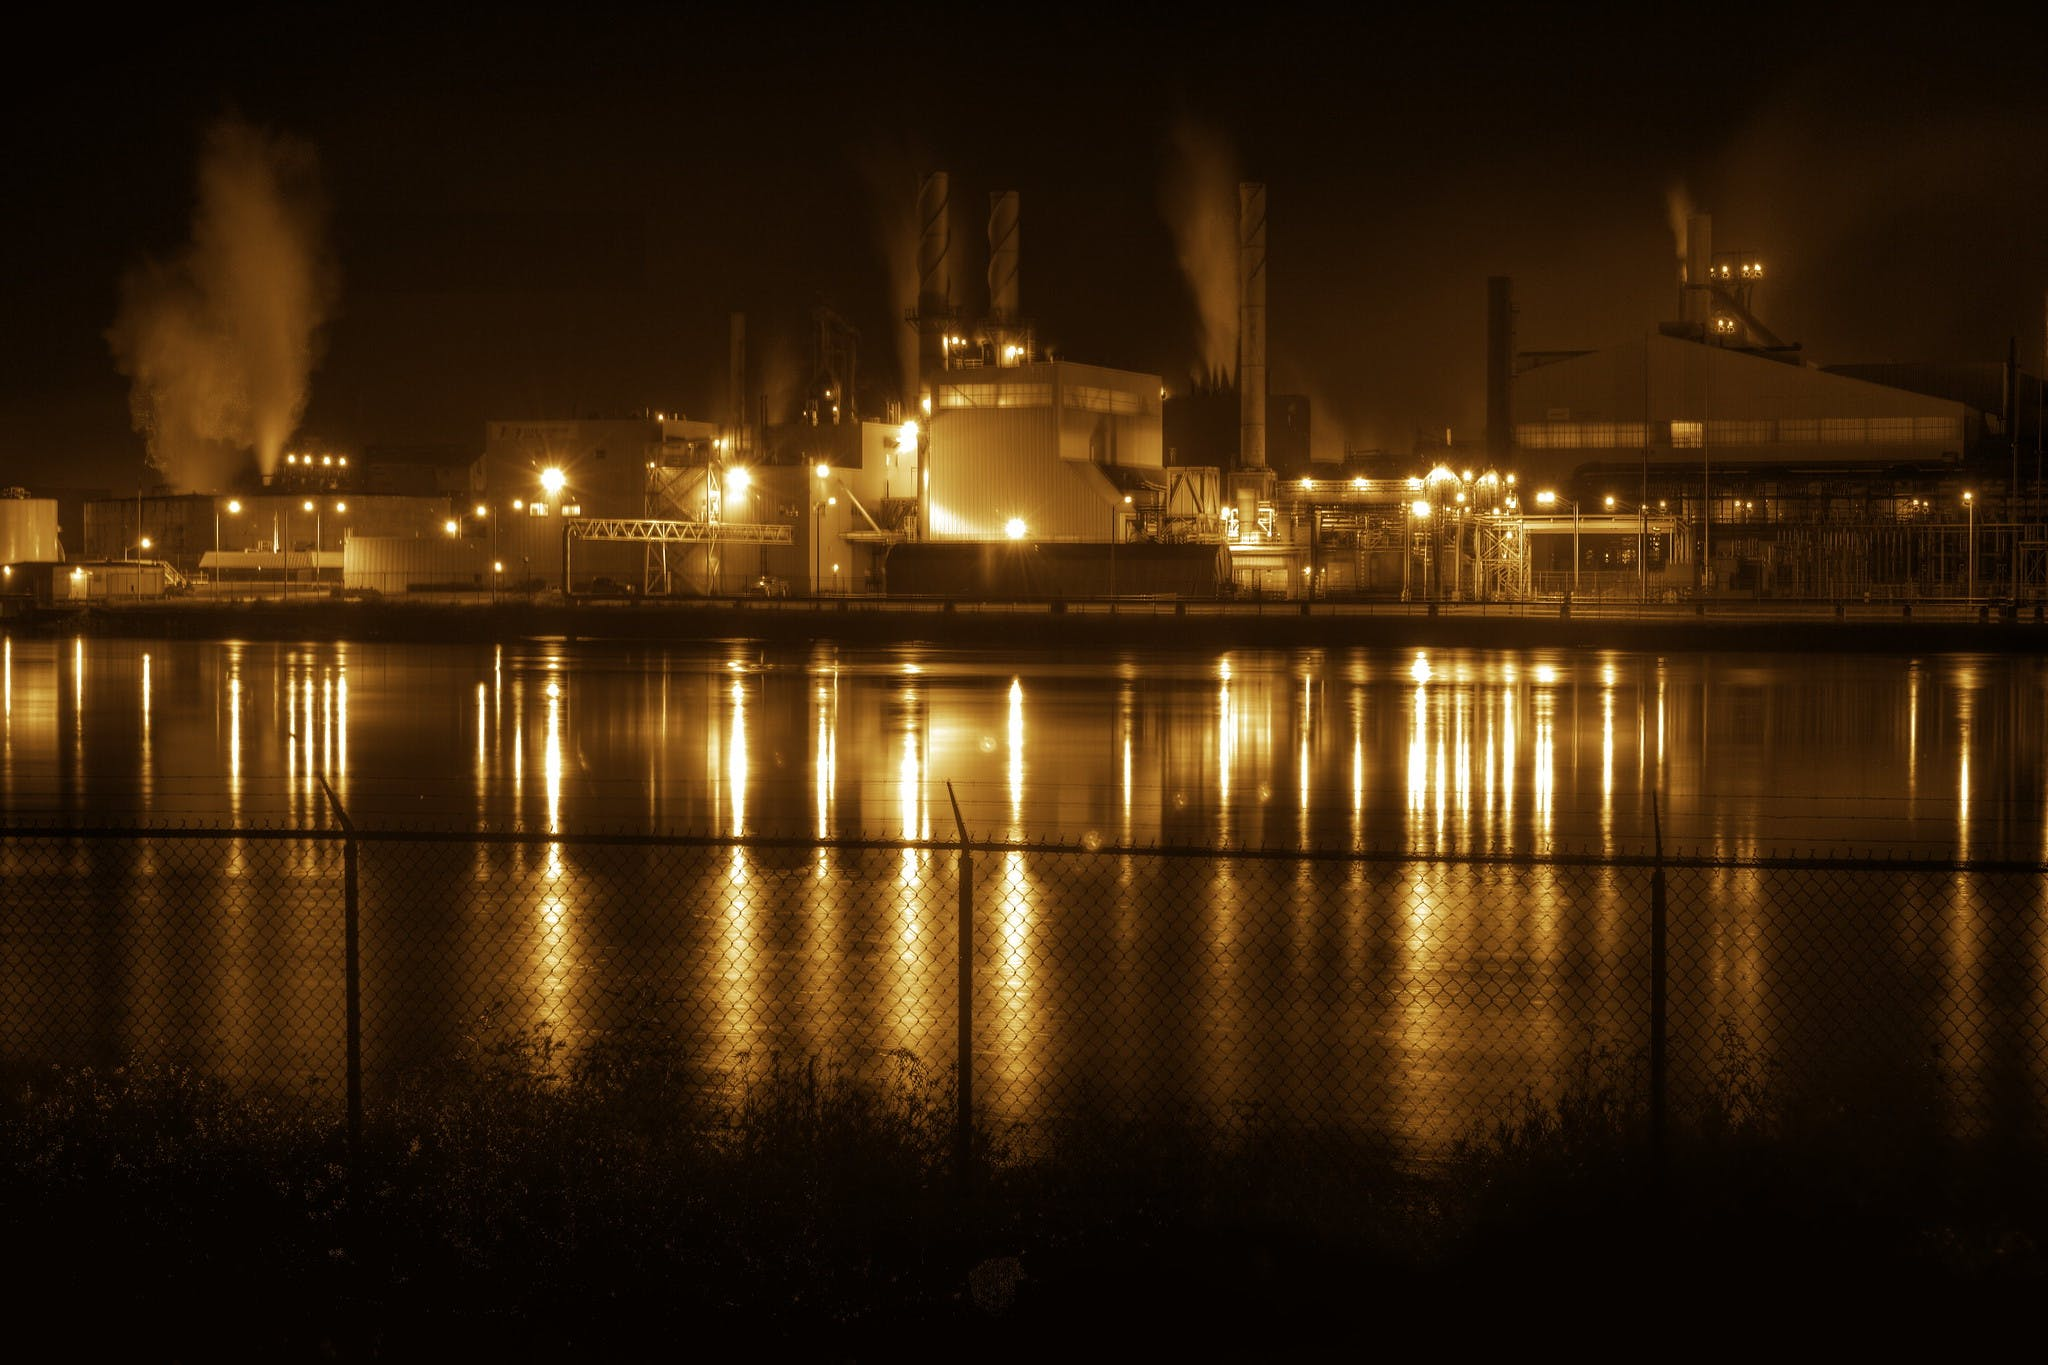 Essar Steel mill in Ontario, taking at night. A manufacturing plant lit up at night, seen from across a river.